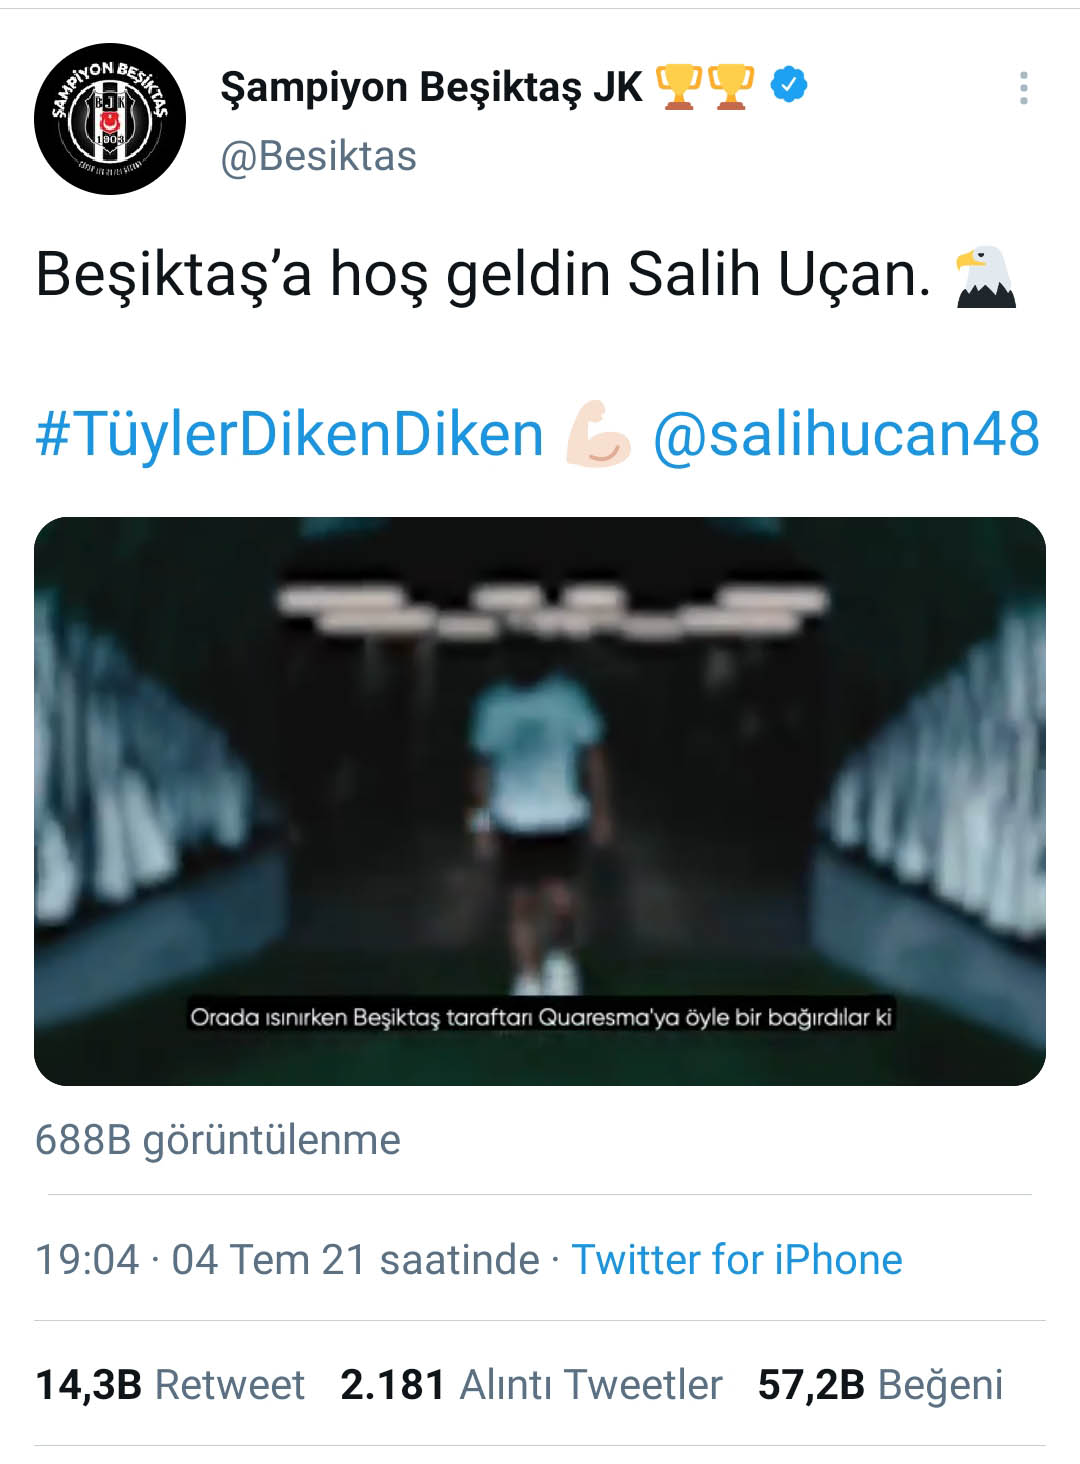 Beşiktaş was able to share its announcement at 19:03 at 19:04 2